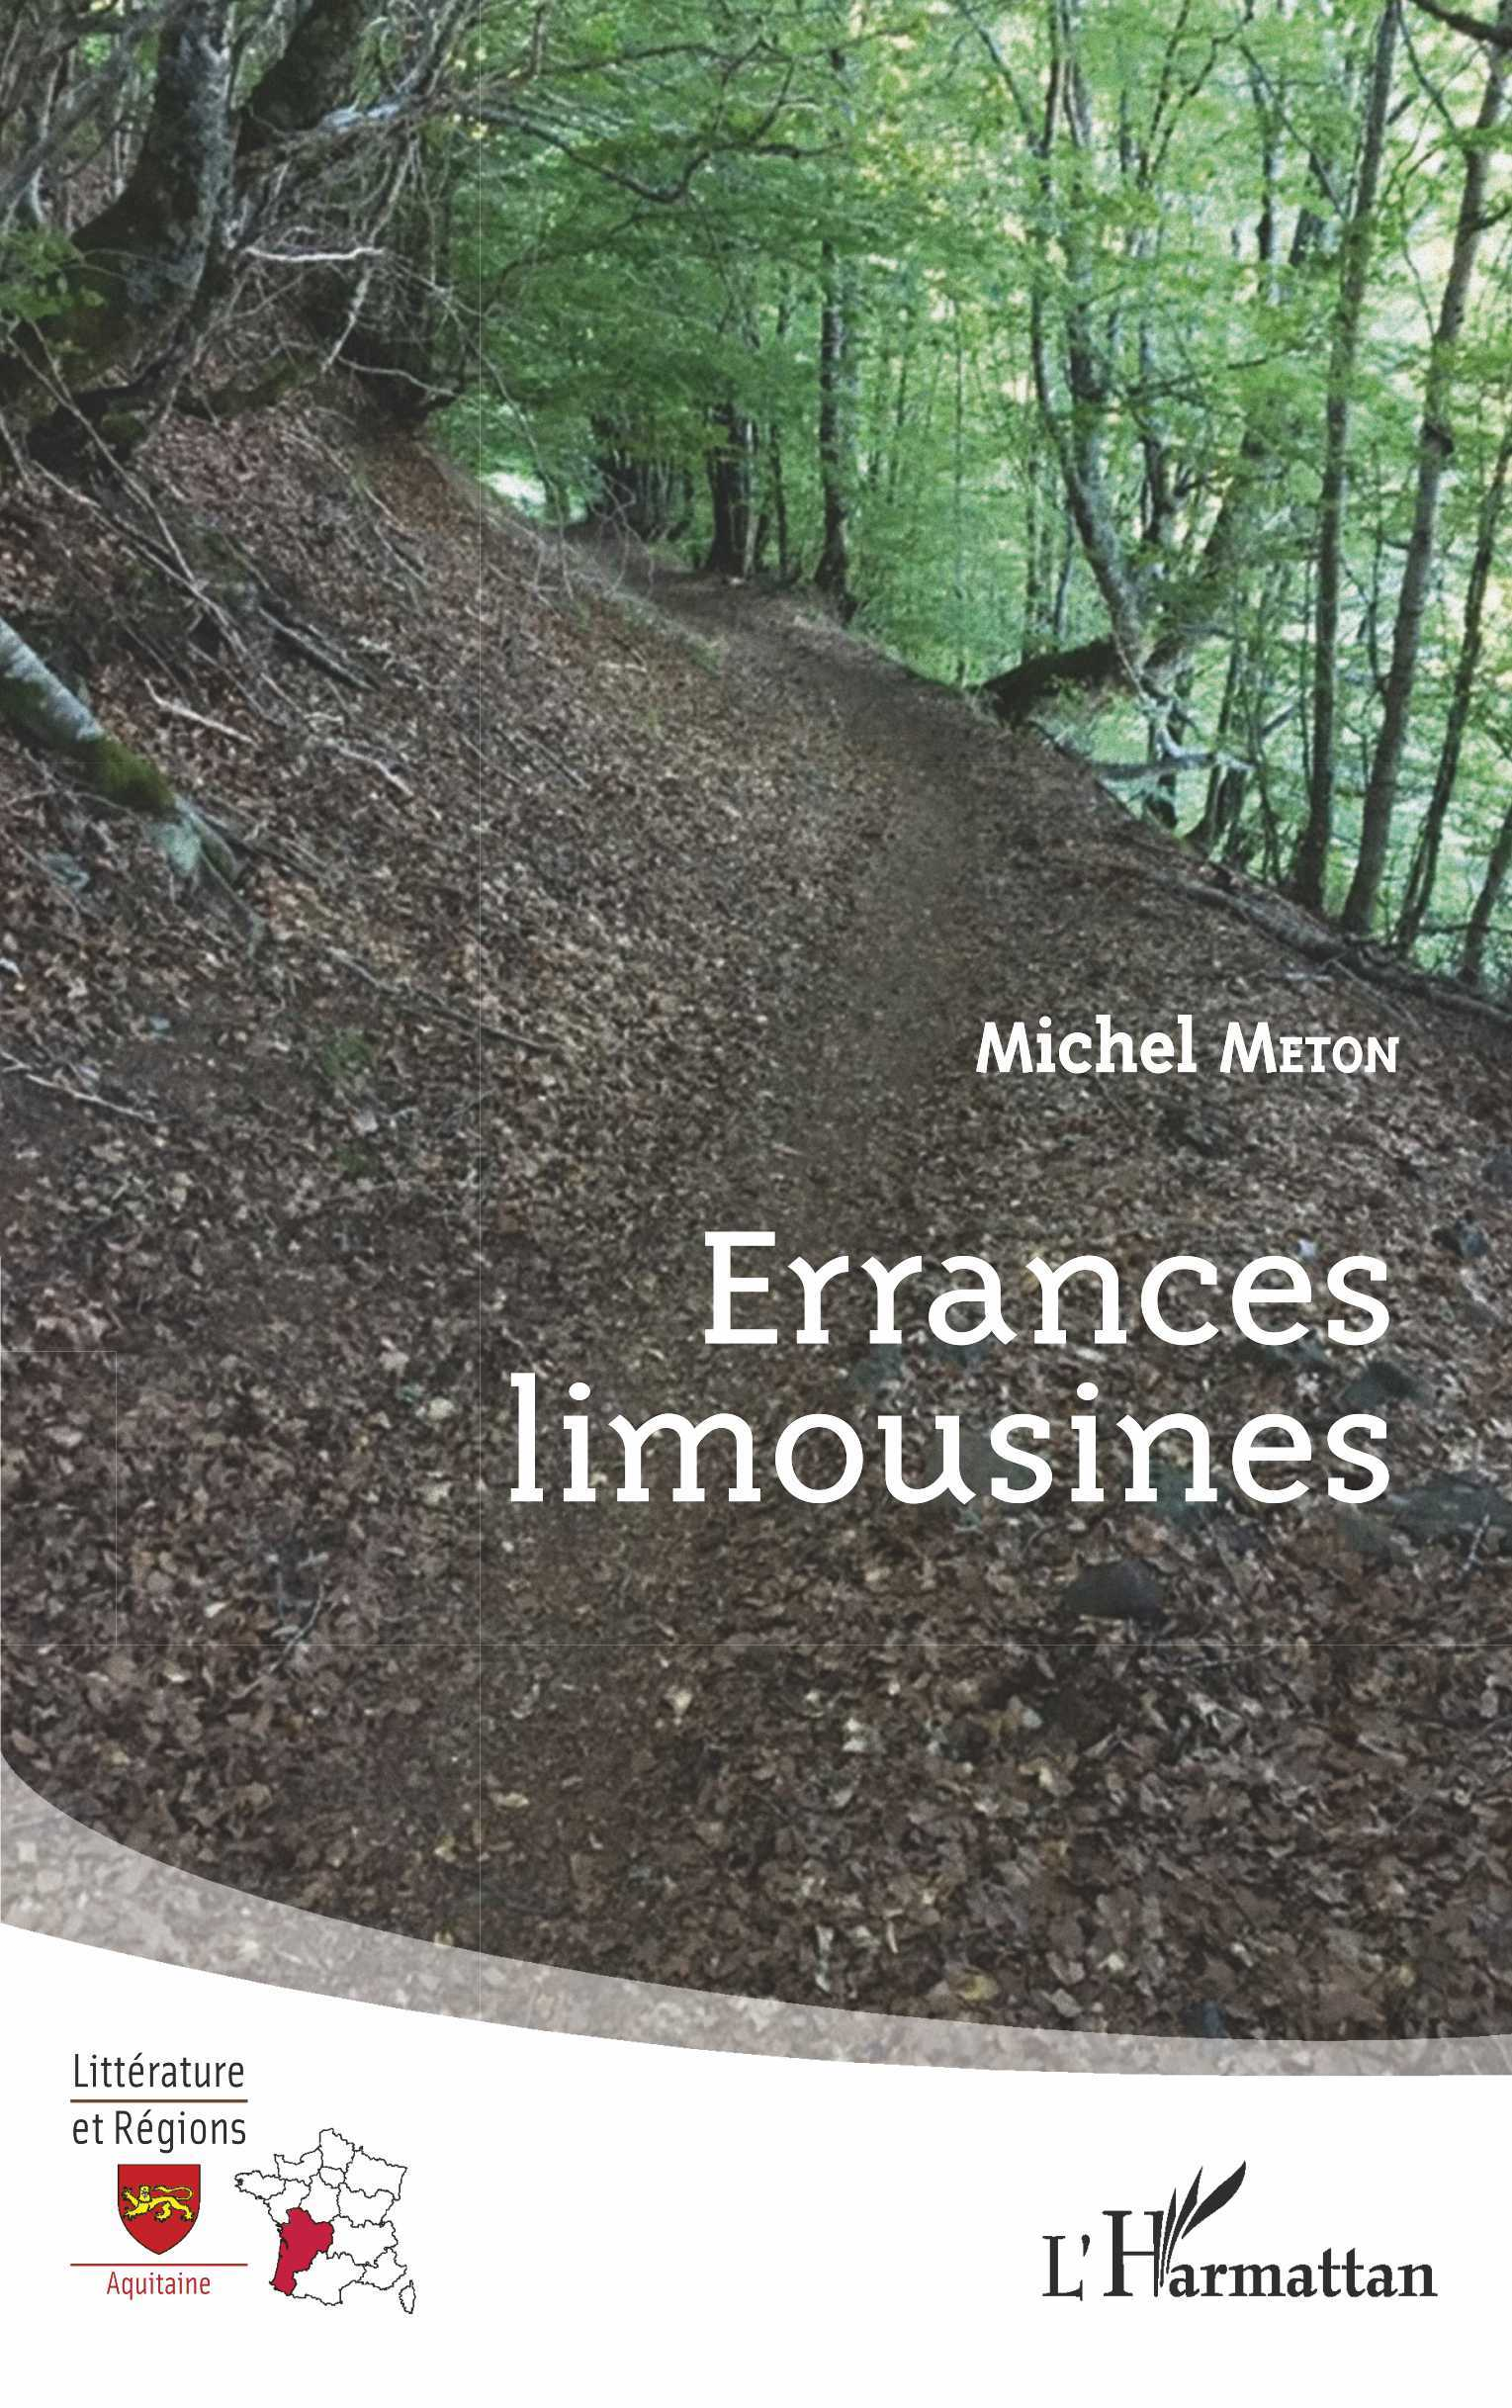 ERRANCES LIMOUSINES